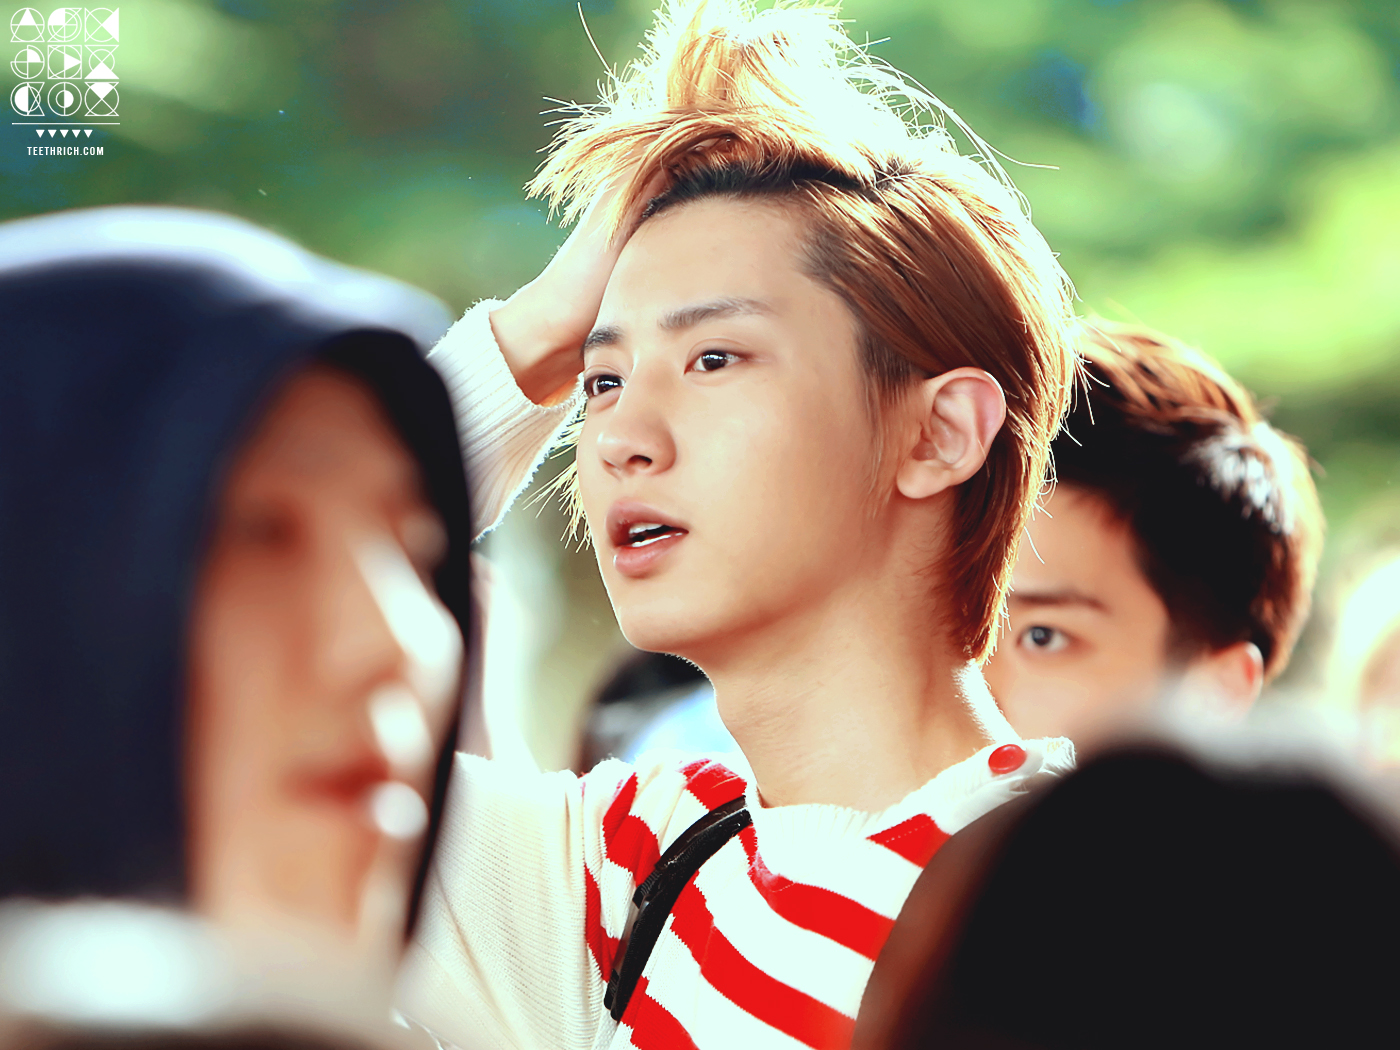 chanyeol K-pop star chanyeol of exo arrived at the tommy hilfiger tommynow icons fall 2018 runway show in shanghai with golden blonde hair, which was a major change from his usual black.